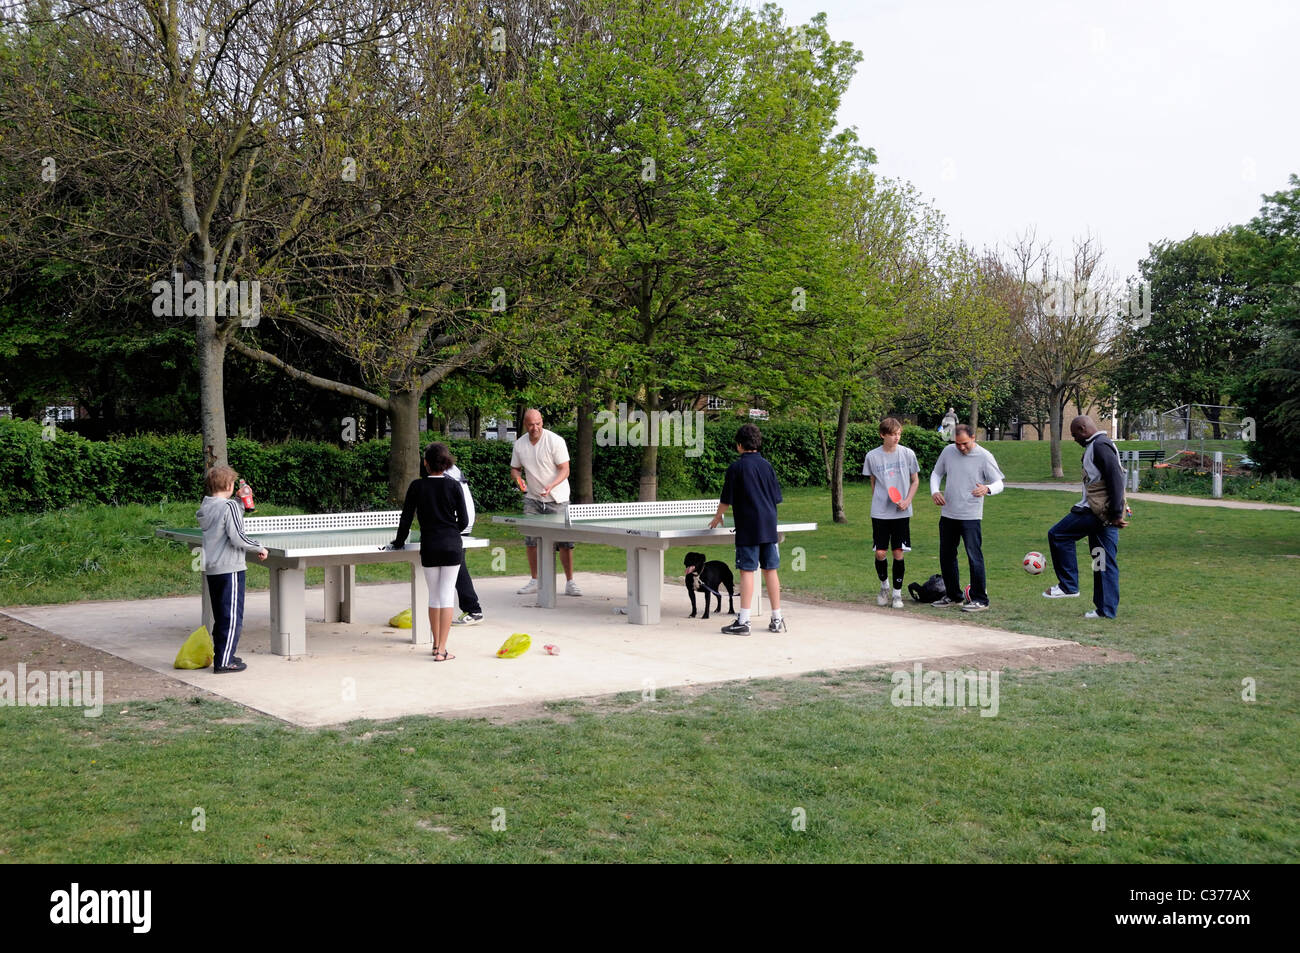 Gens jouer piscine tennis de table Whittington Park Holloway Islington Londres Angleterre Royaume-uni Photo Stock